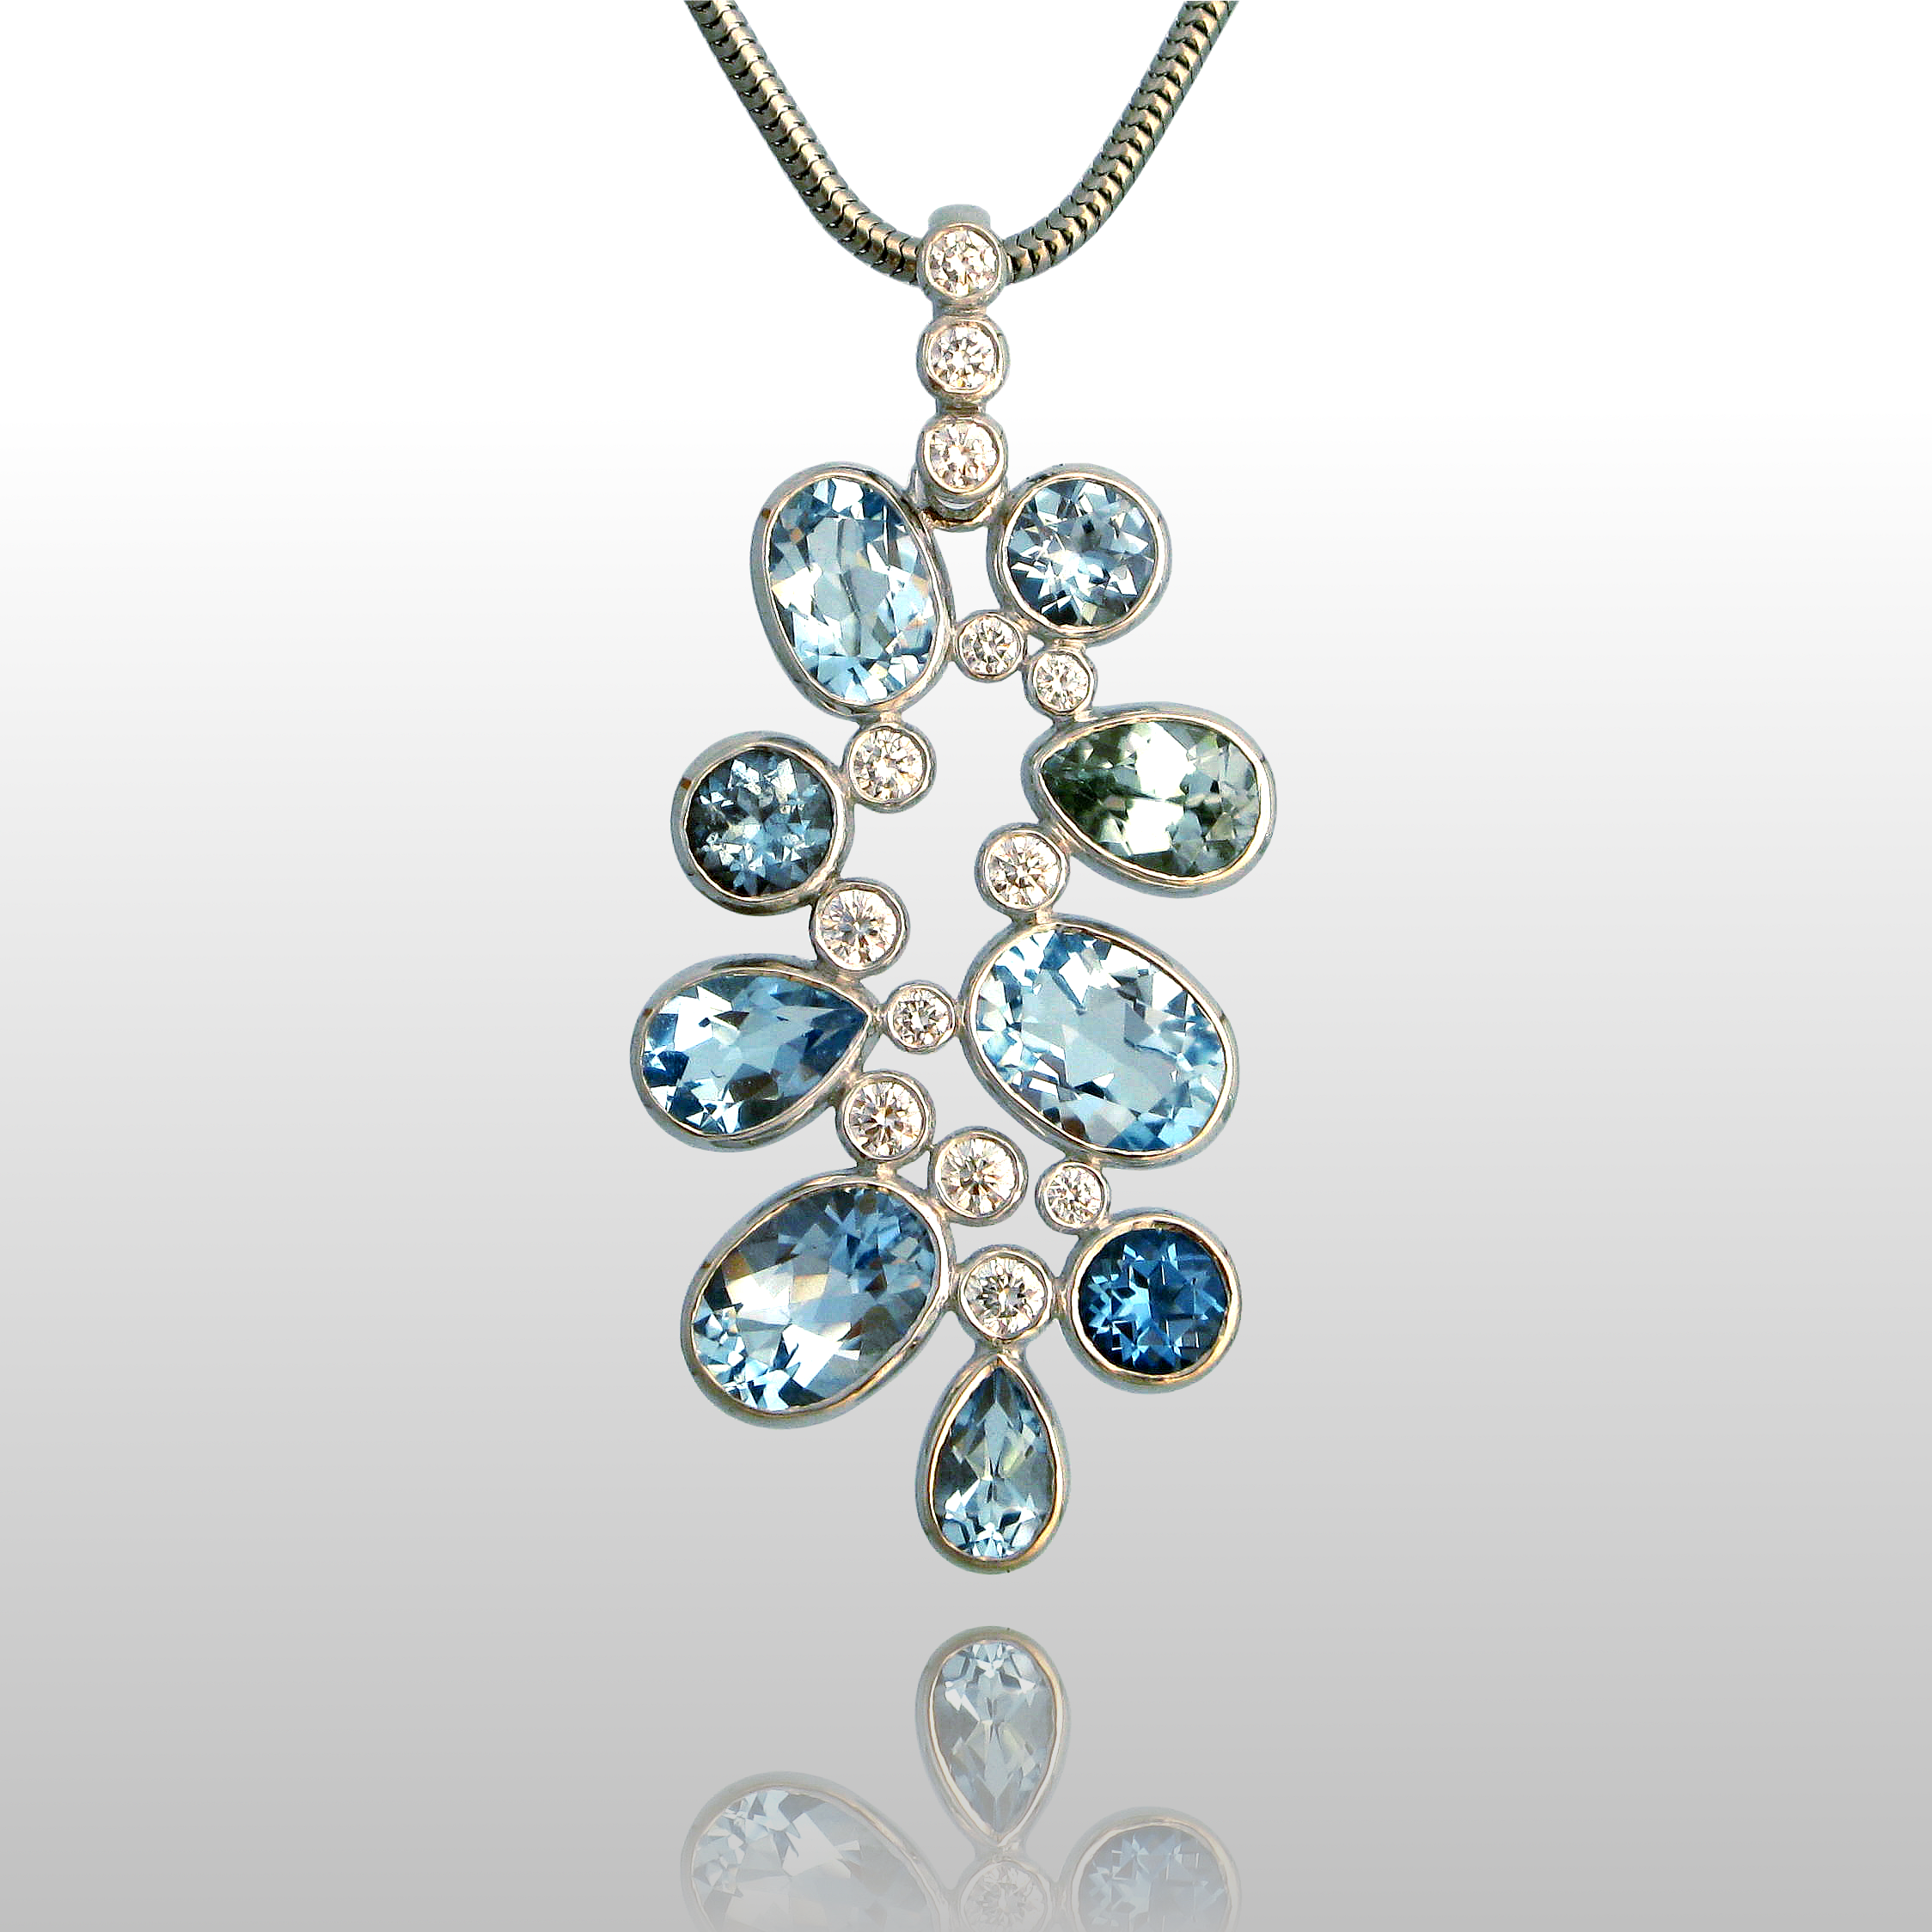 Diamond, Topaz and Zircon Necklace 'Kaleidoscope' in 18k White Gold, one-of-a-kind by Pratima Design Fine Art Jewelry